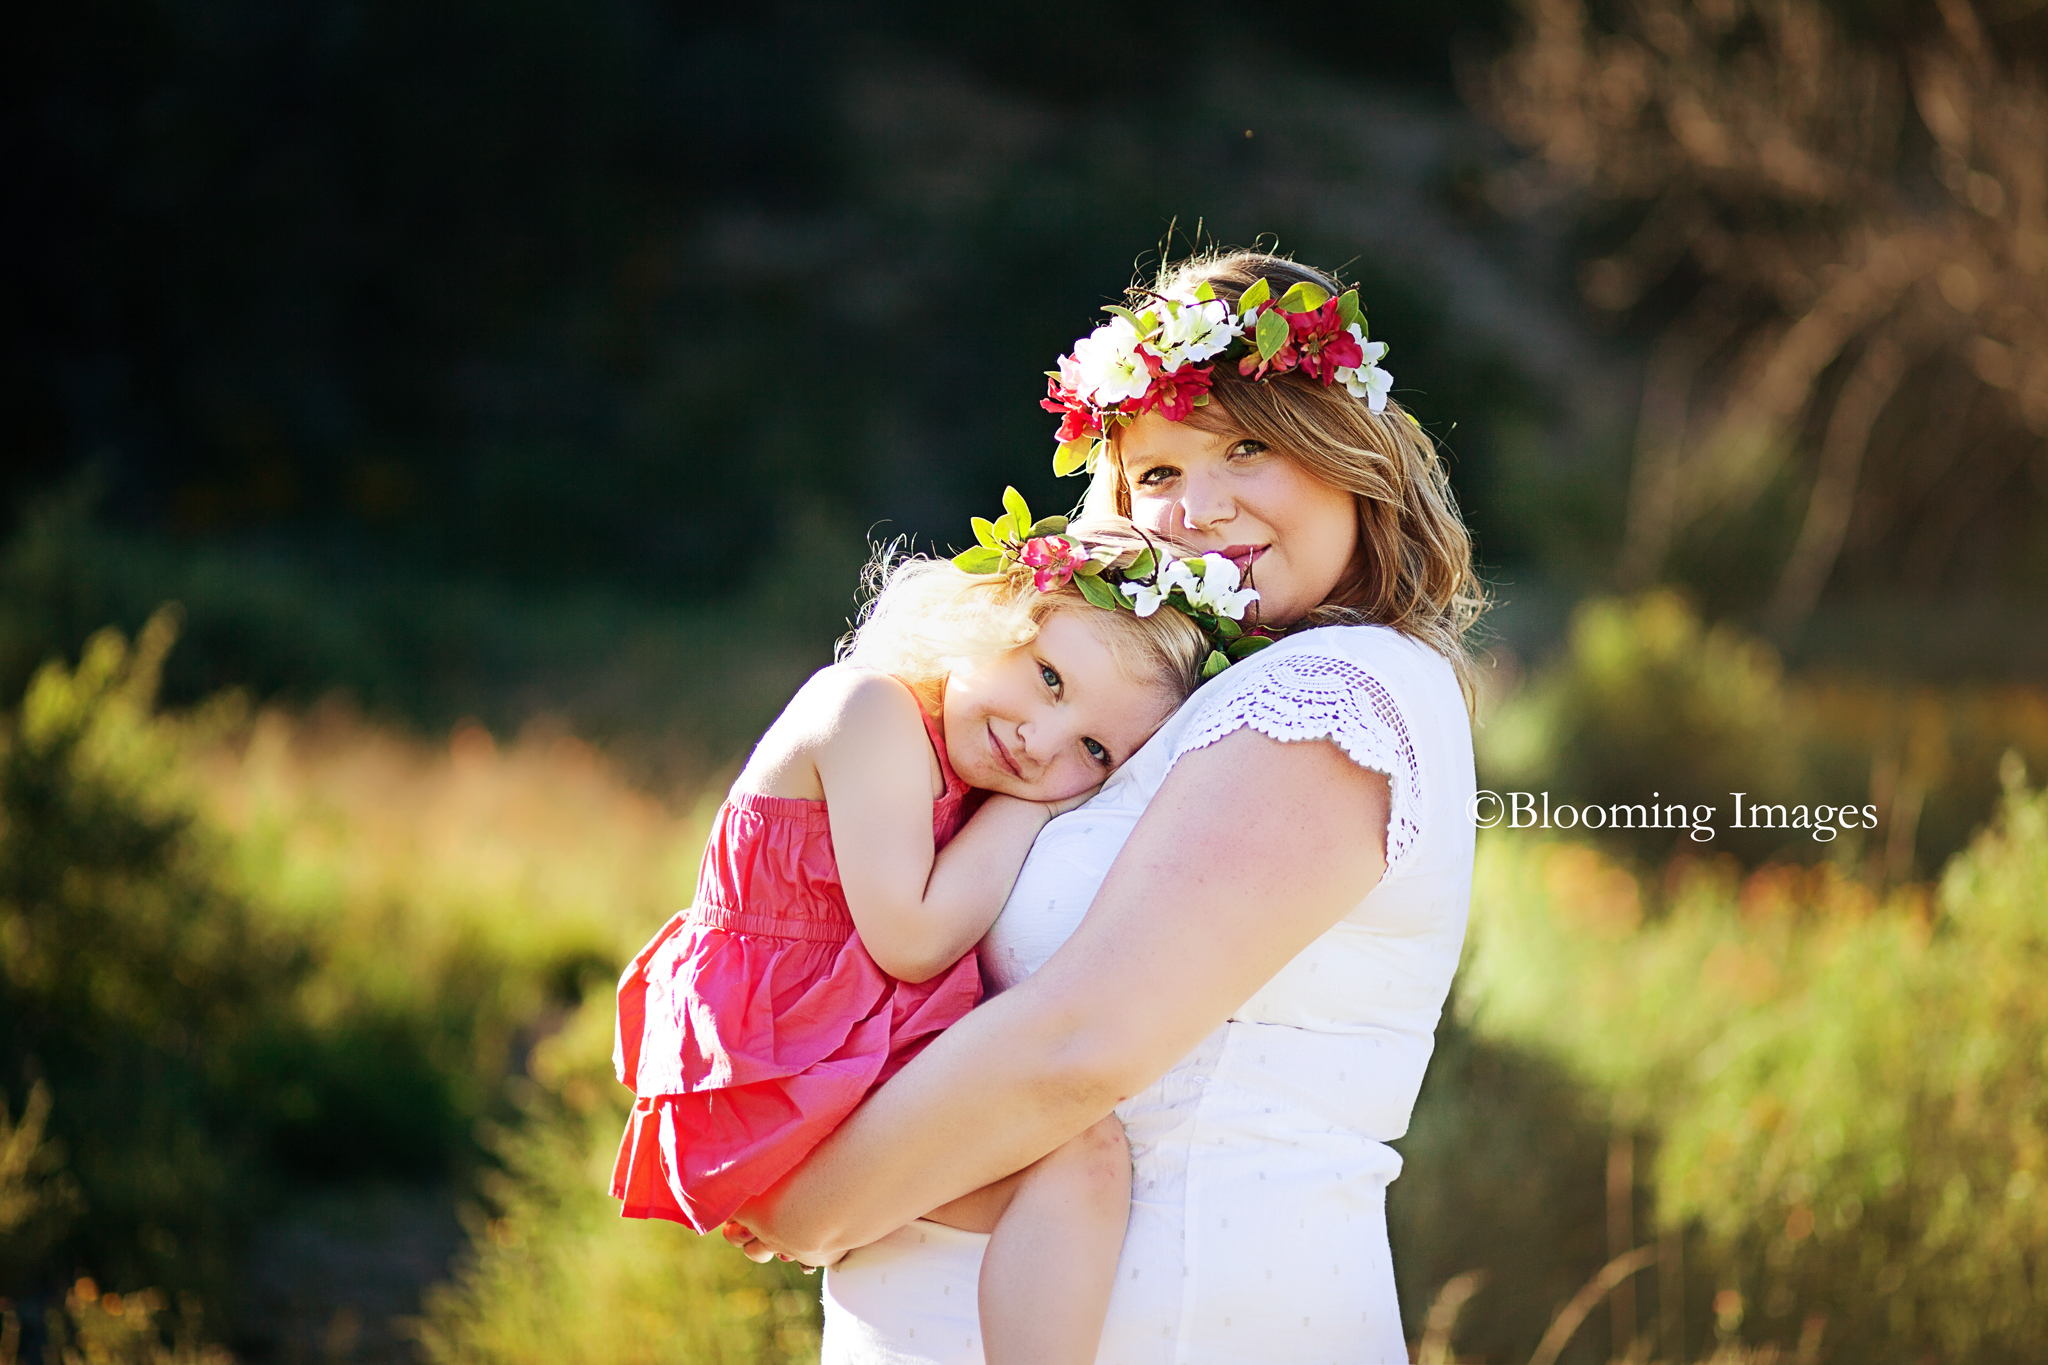 Tijeras Meternity Photographers, Albuquerque Maternity Photographers, Taos Maternity Photographers, Santa Fe Maternity Photographers, Flower headpiece maternity photos